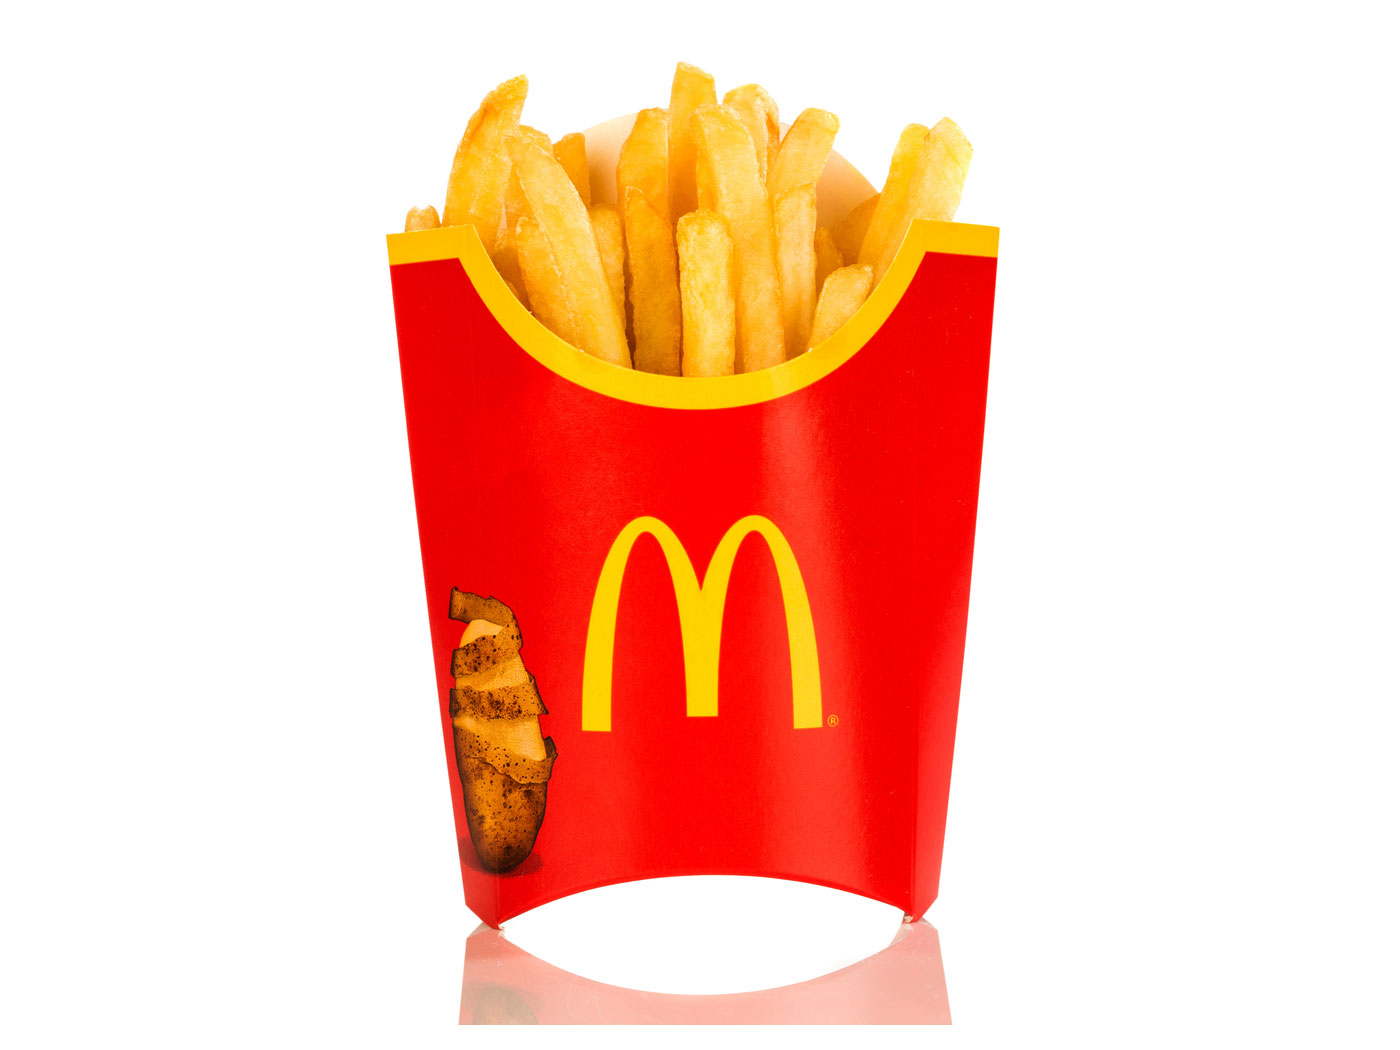 McDonald's U.S. Fries Have Three Times as Many Ingredients as Those in the UK